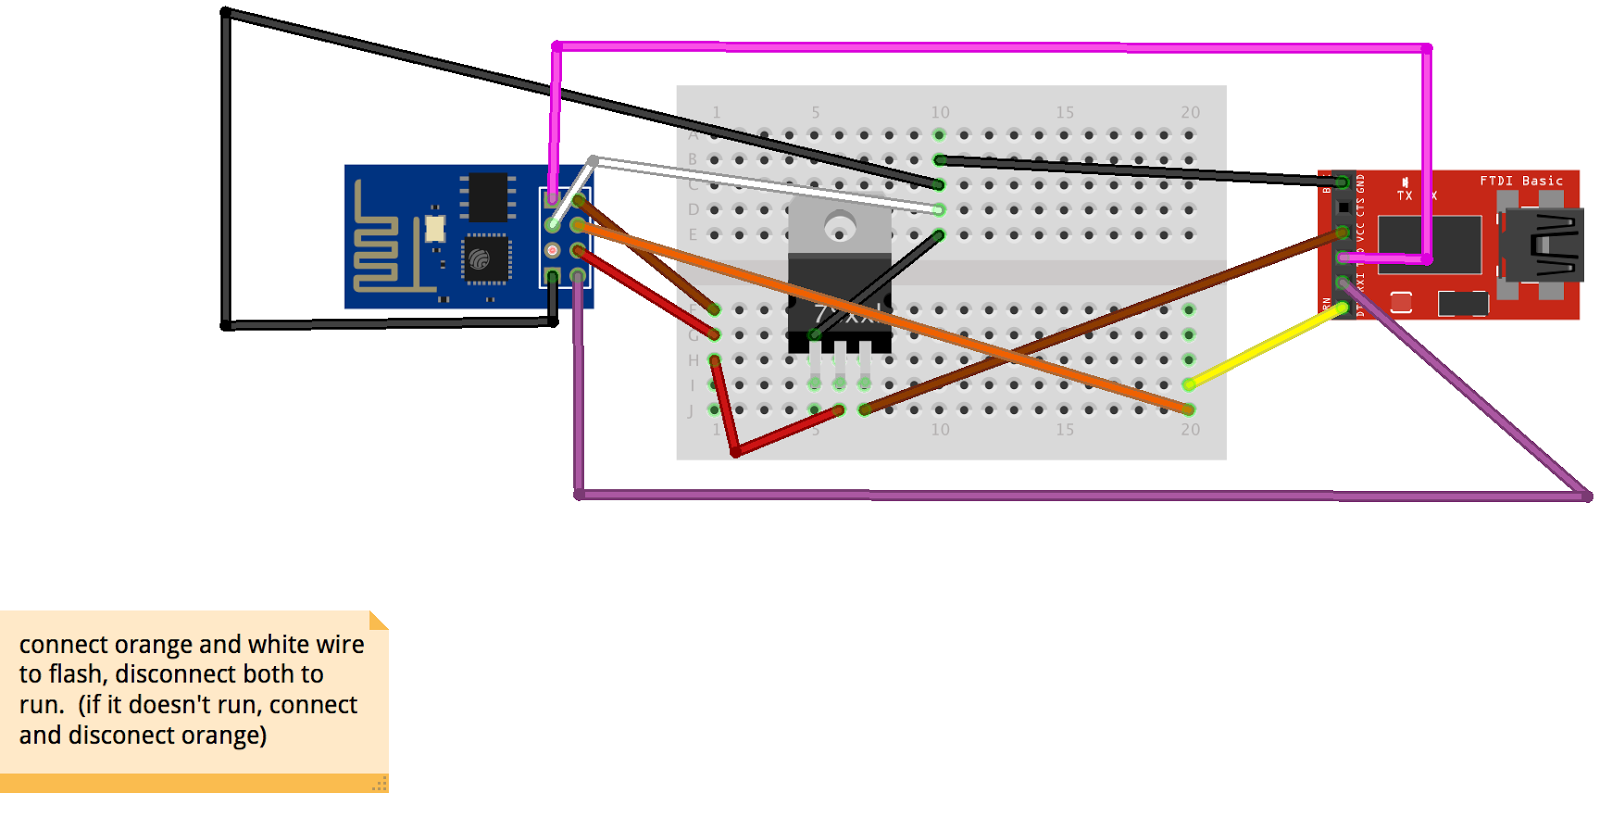 Getting started with the ESP8266-01 wifi and CP2102 USB to UART